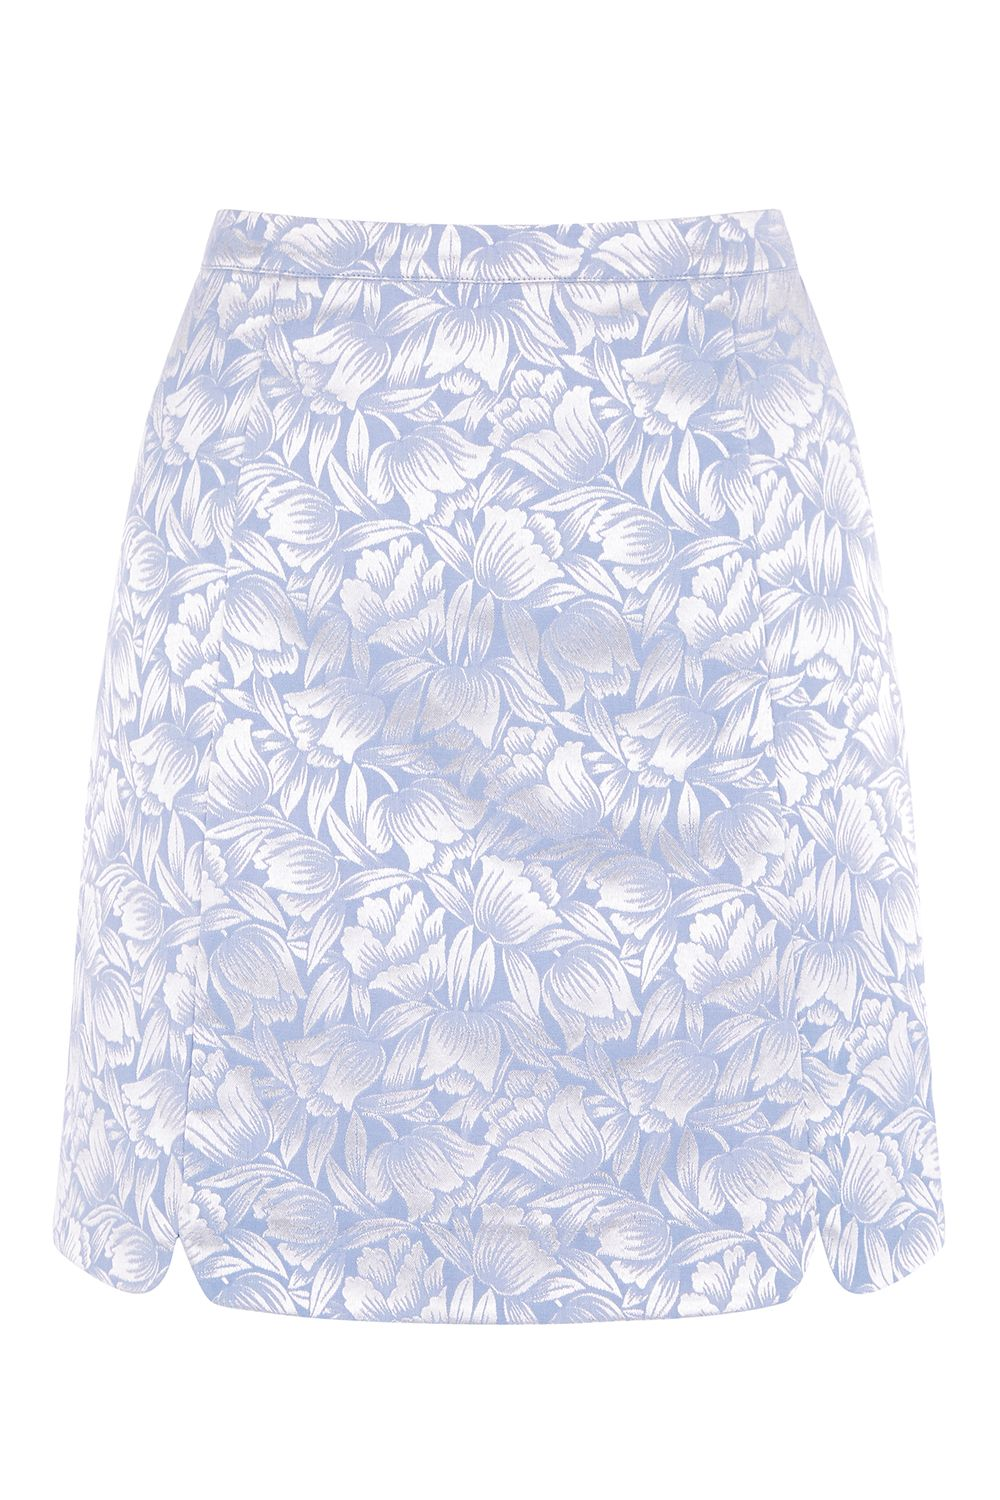 Oasis JACQUARD MINI SKIRT, Multi-Coloured